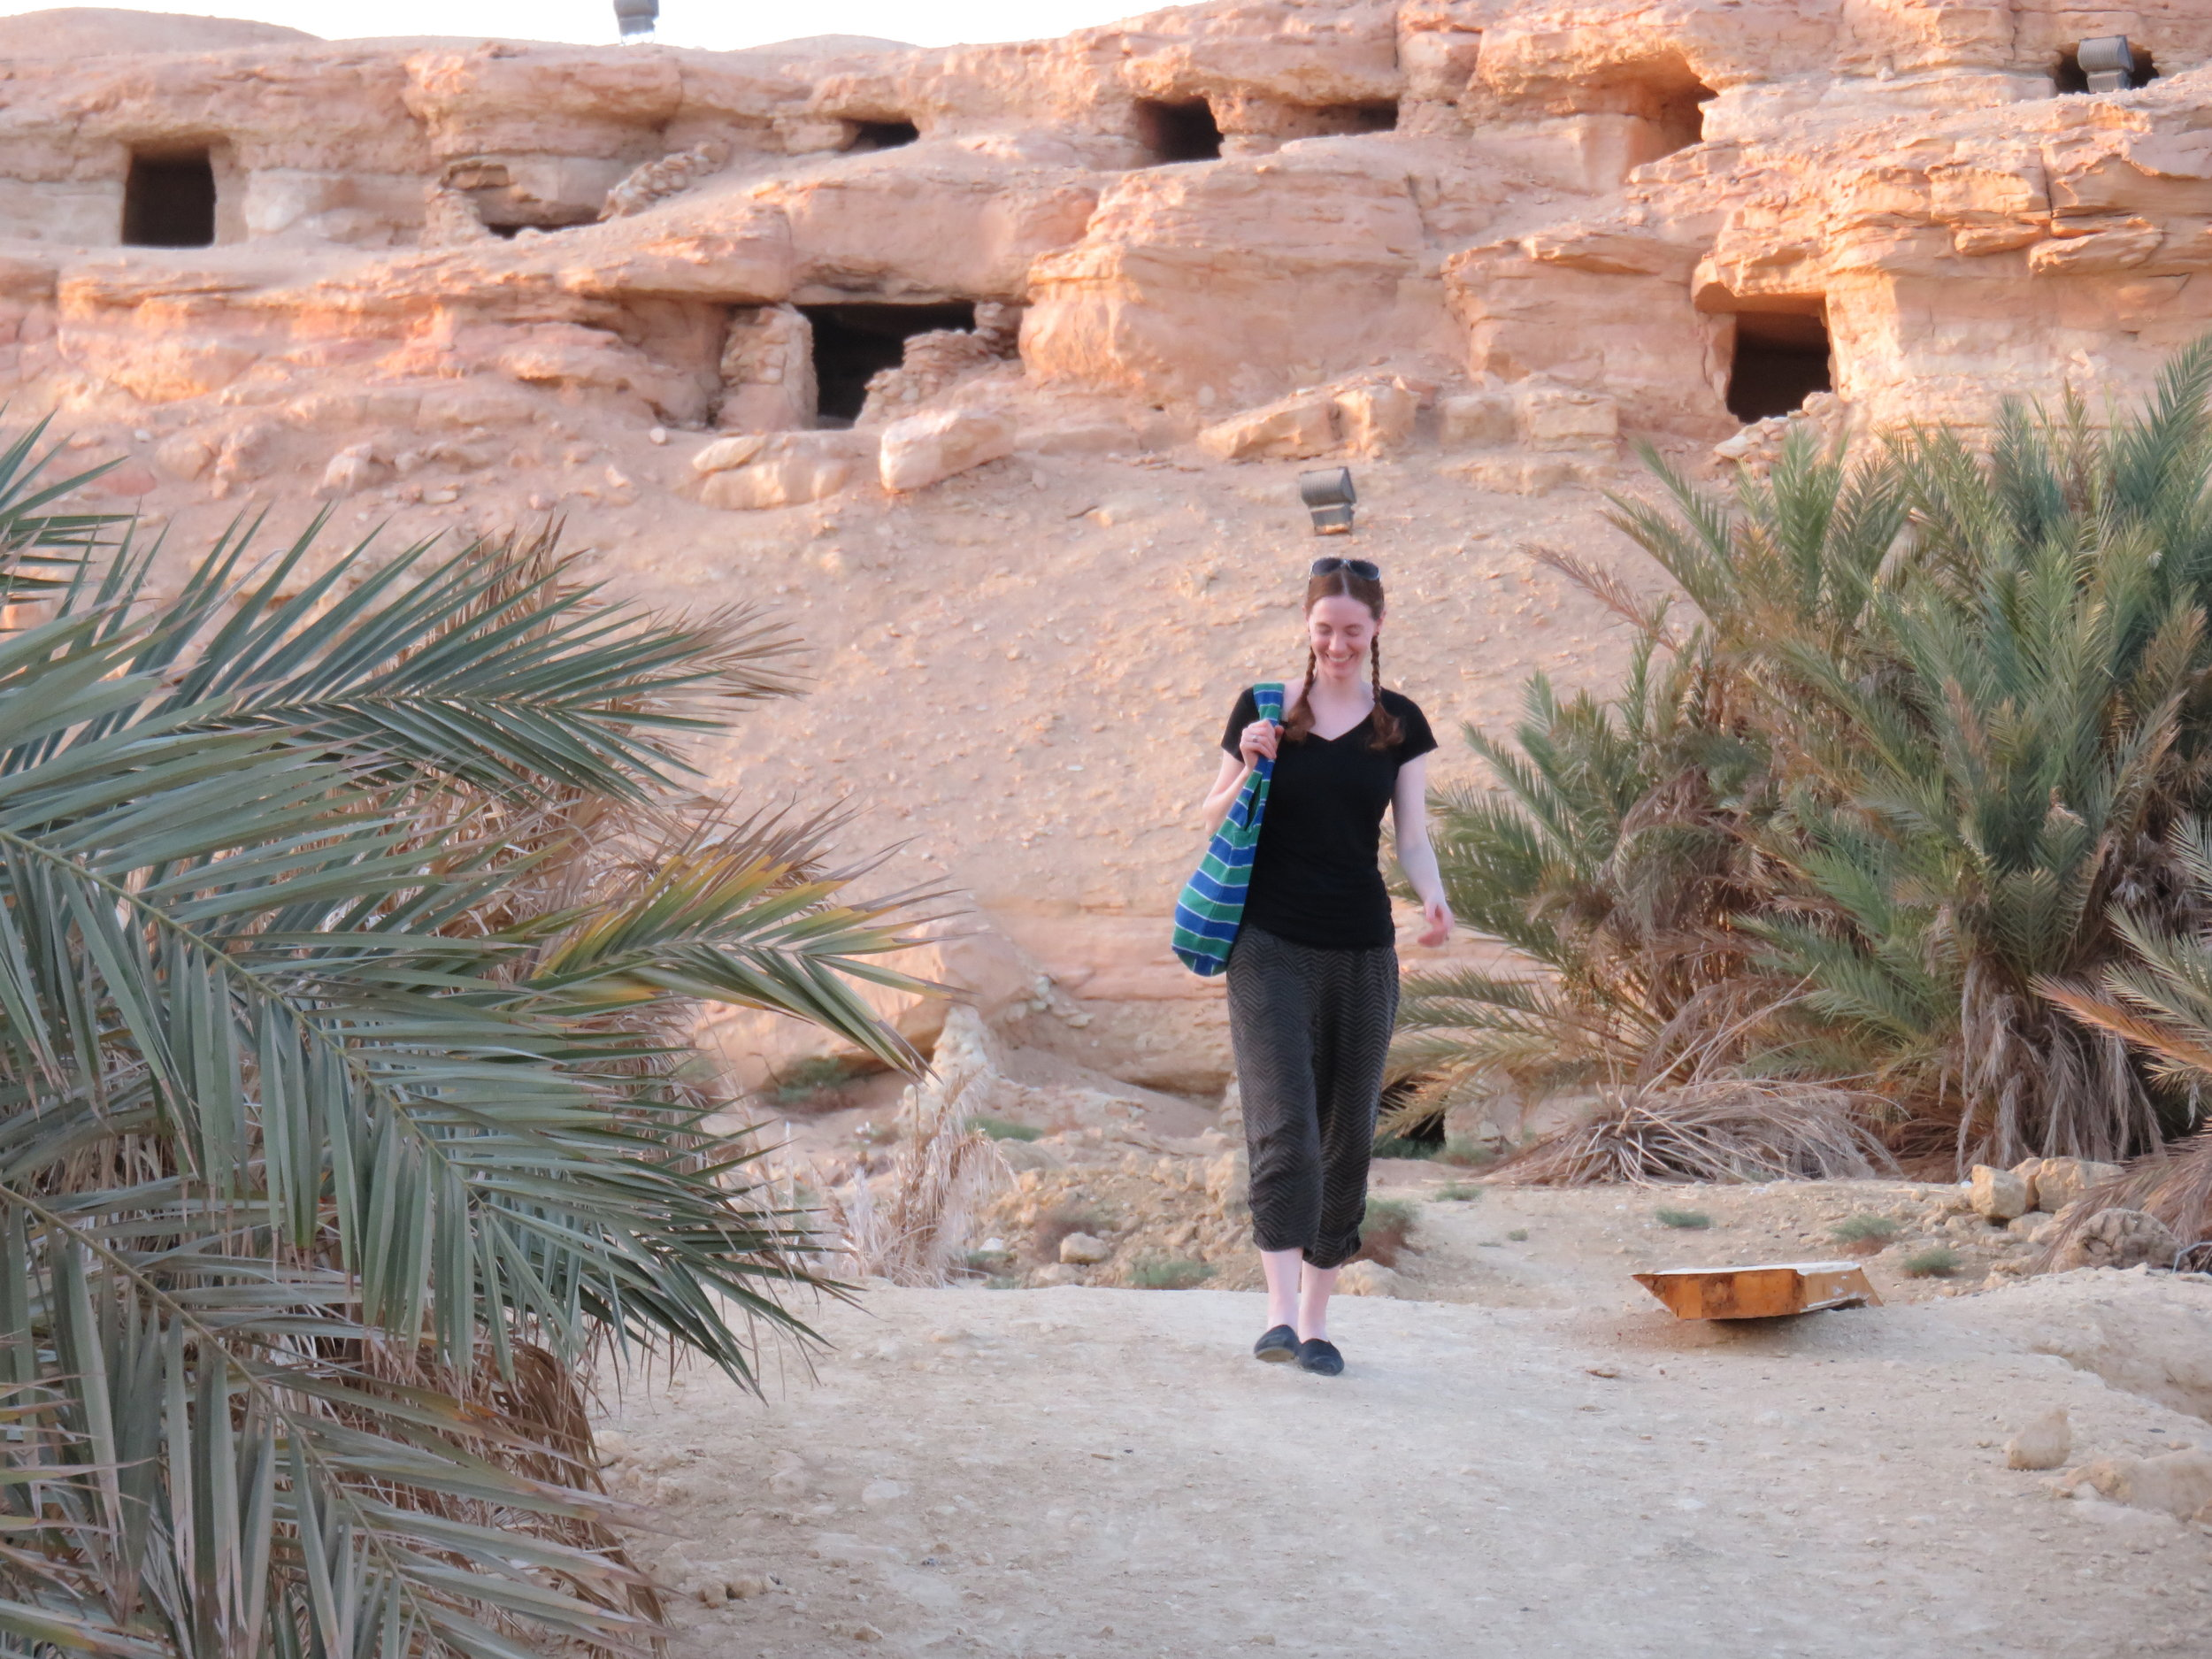 Laura Bannister in Egypt